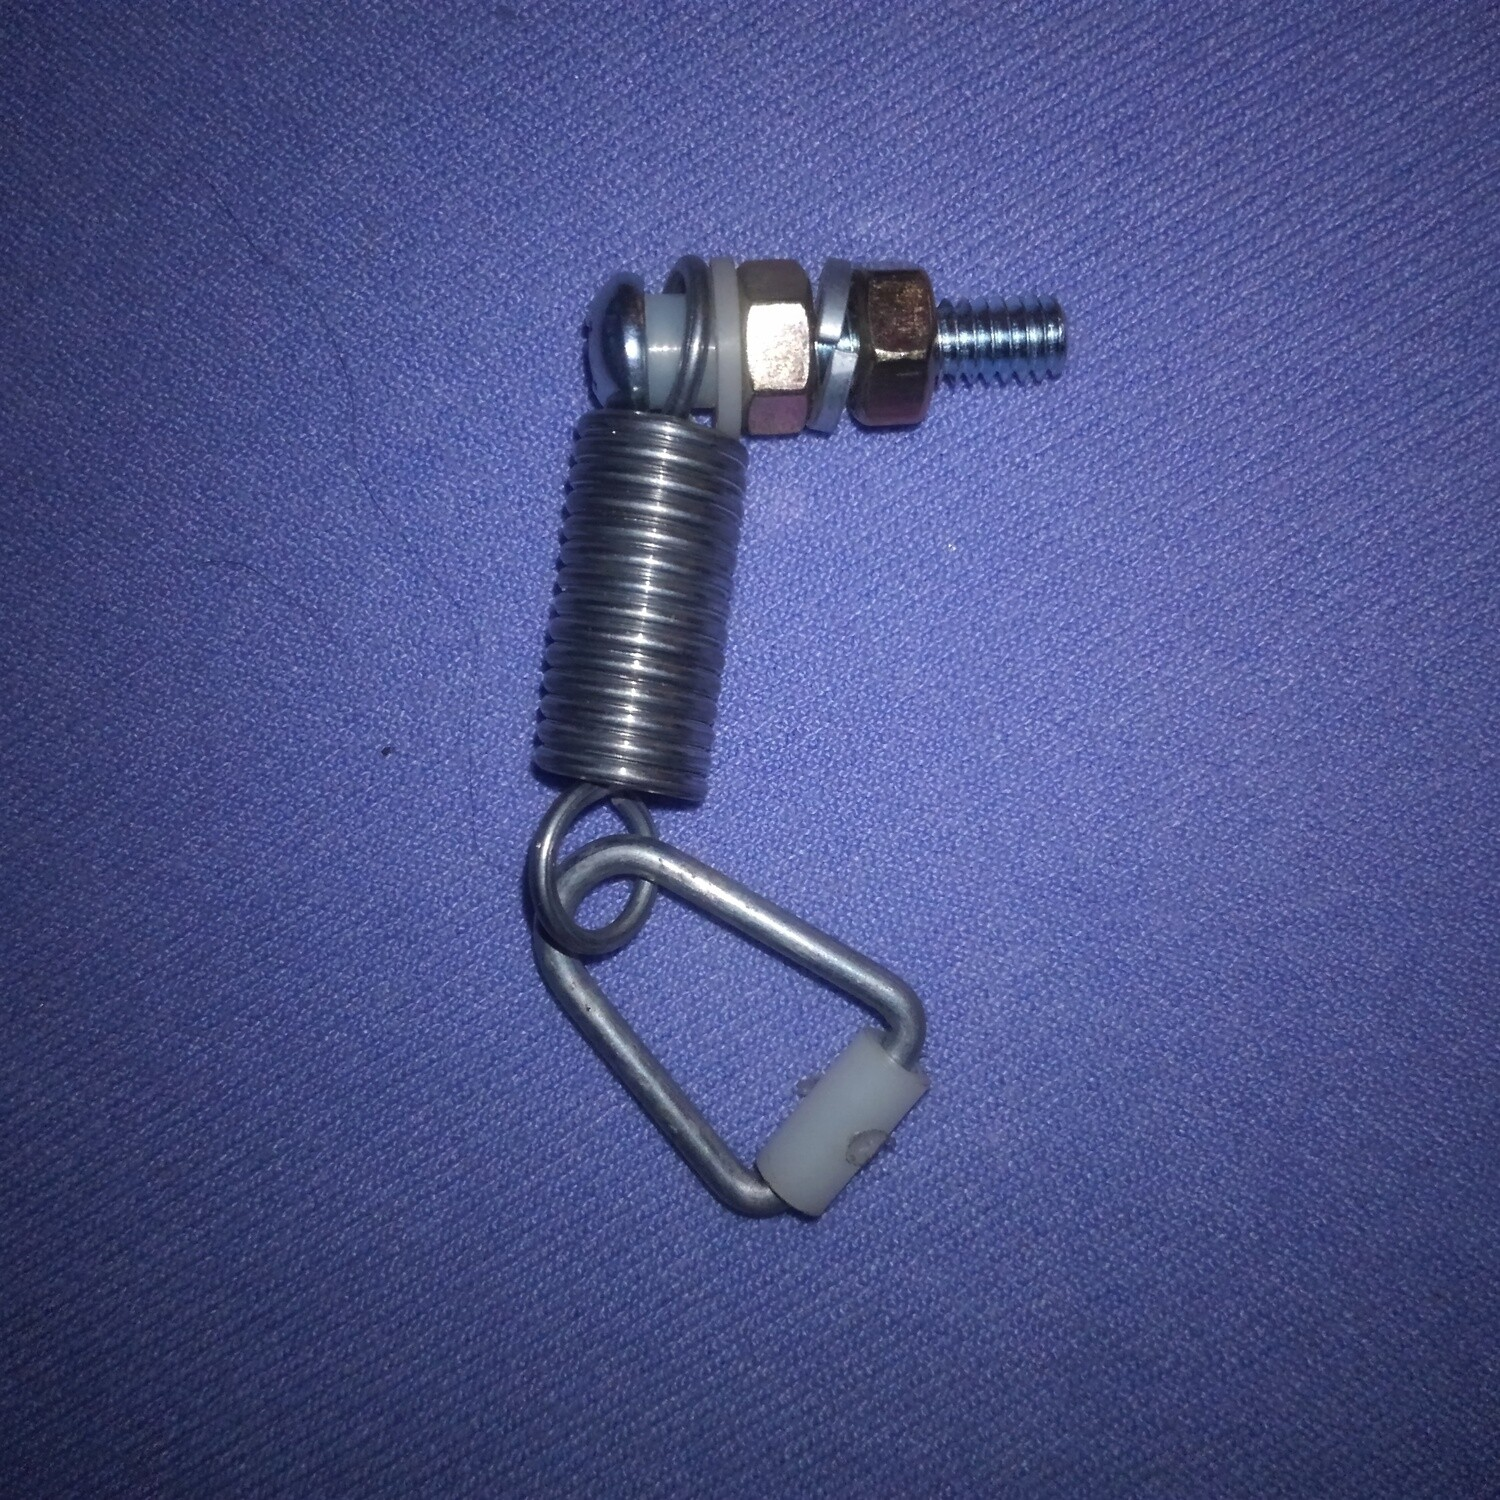 Throttle cable spring connector for RV